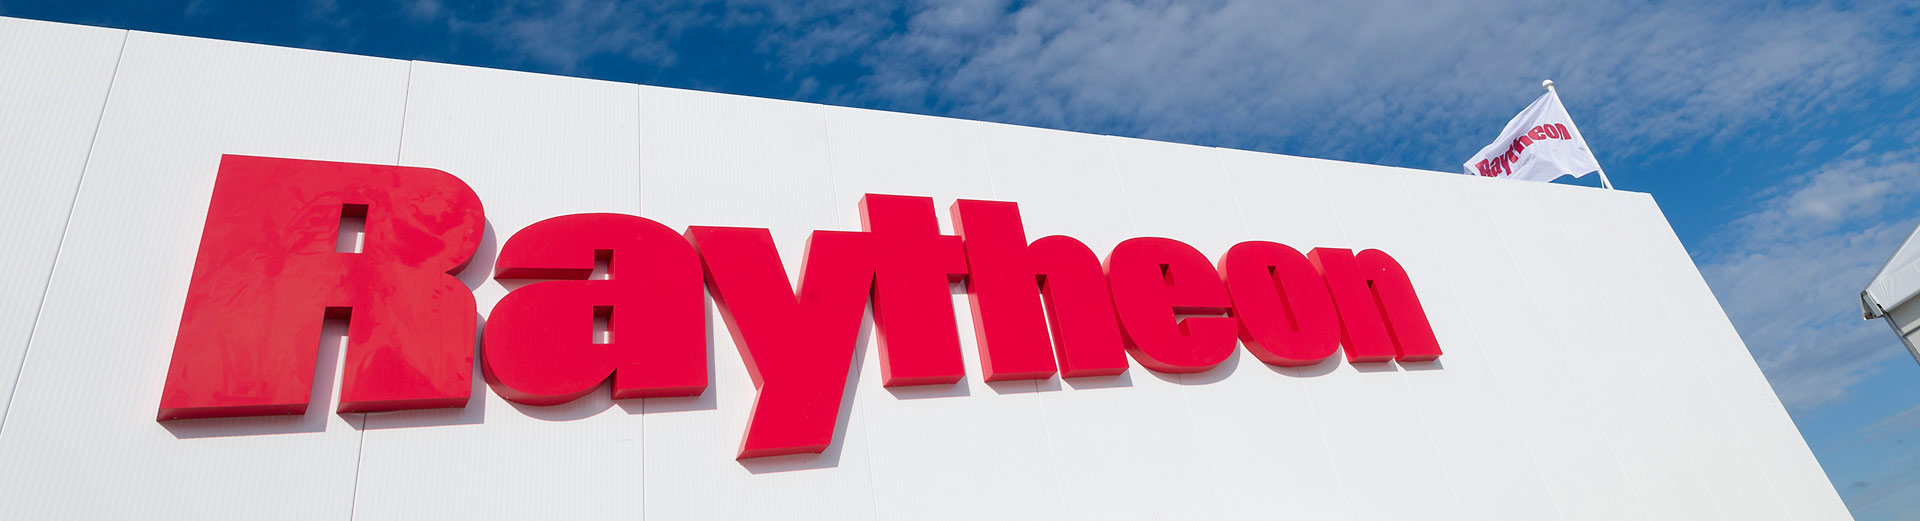 Raytheon's solution to the competitive development of the U.S. Army's Lower Tier Air and Missile Defense Sensor, or LTAMDS, combines five decades of integrated air and missile defense leadership with unmatched radar expertise across all domains.